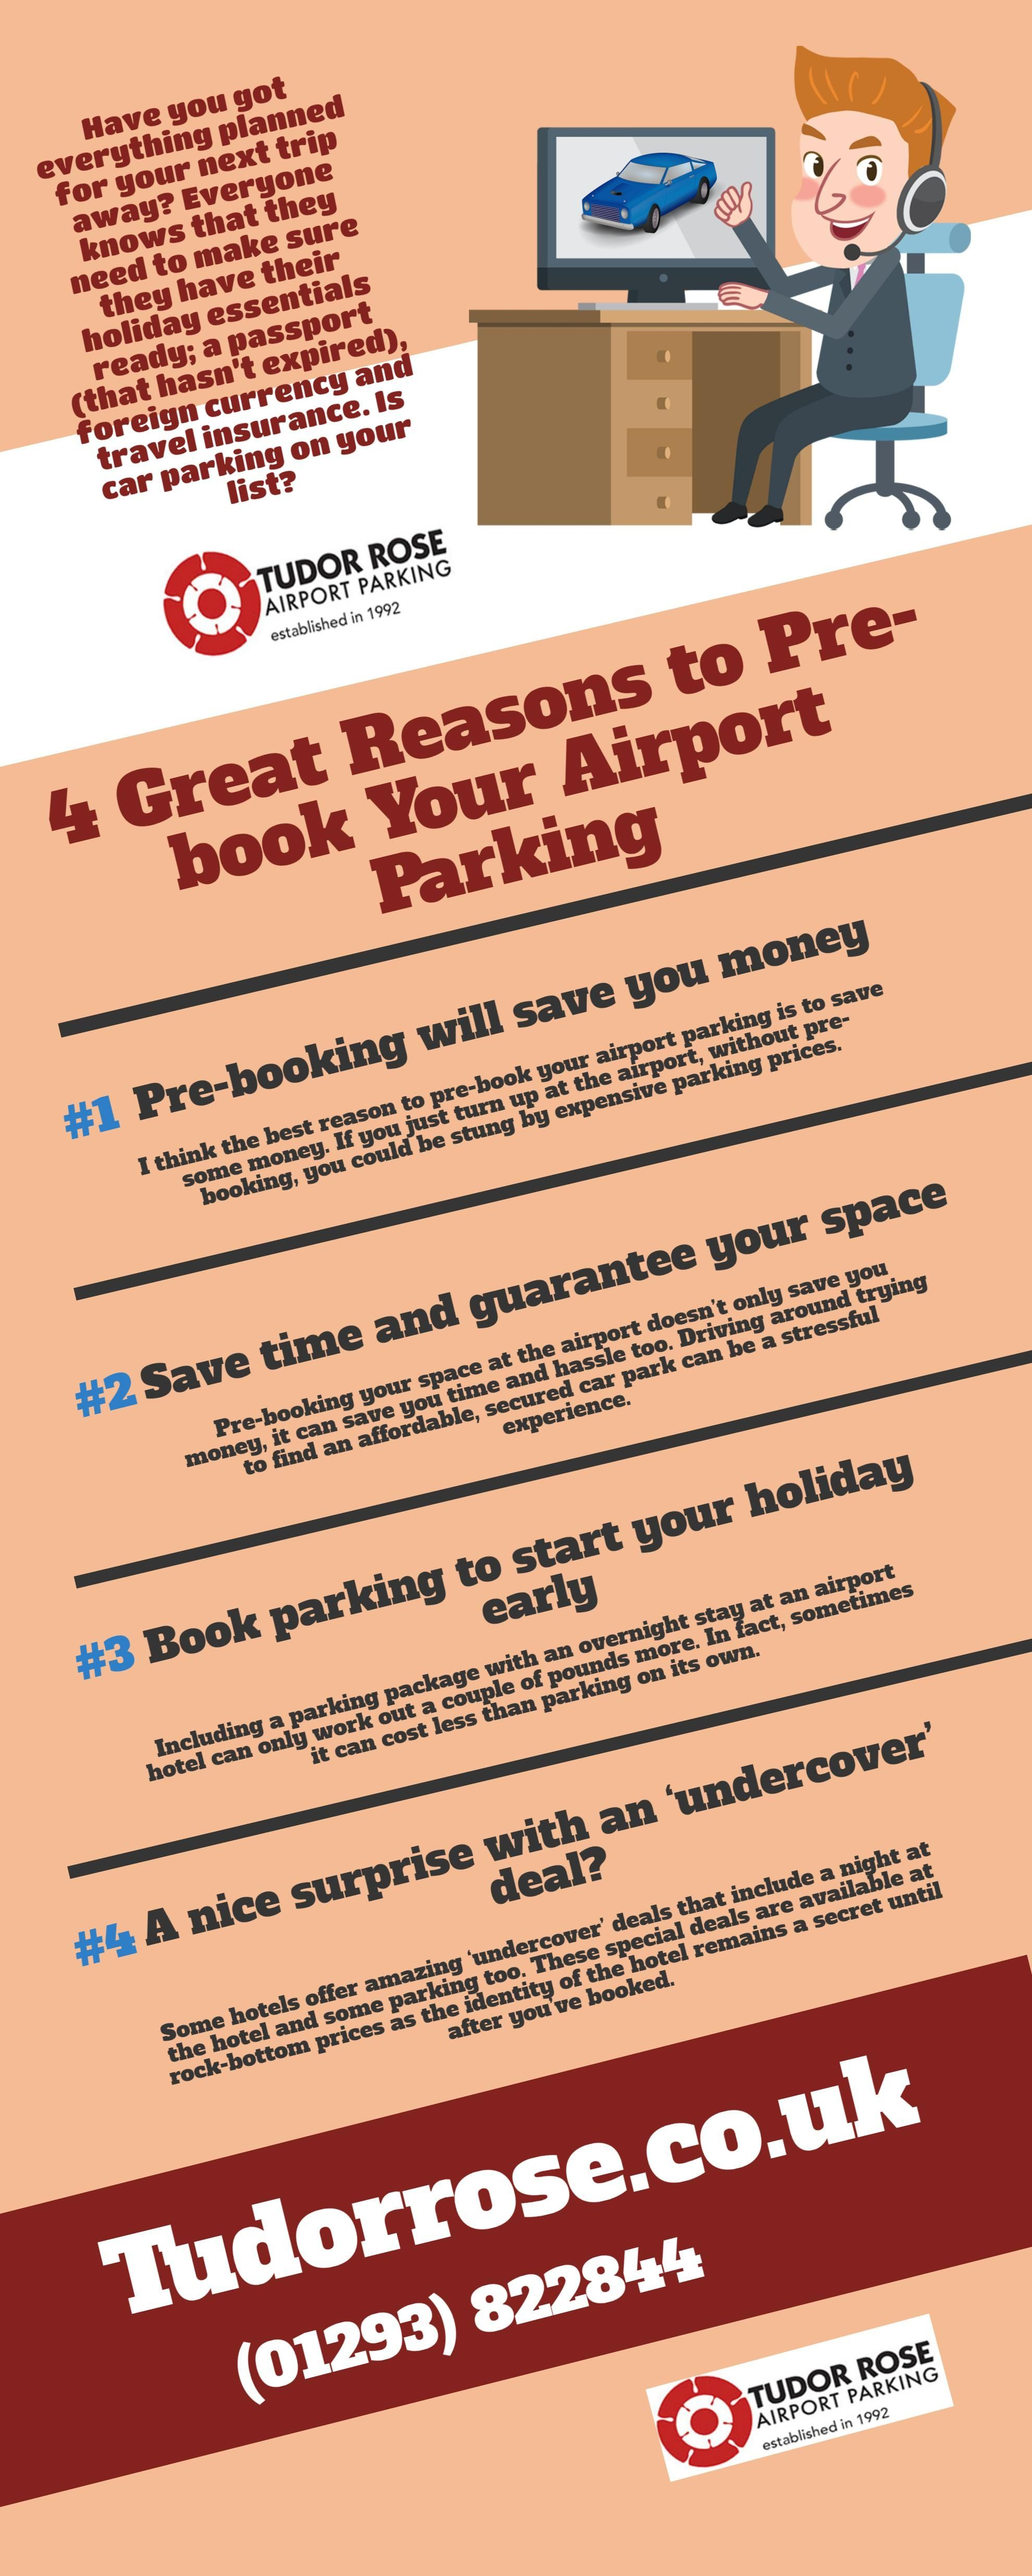 4 great reasons to pre book your airport parking car parking 4 great reasons to pre book your airport parking kristyandbryce Choice Image